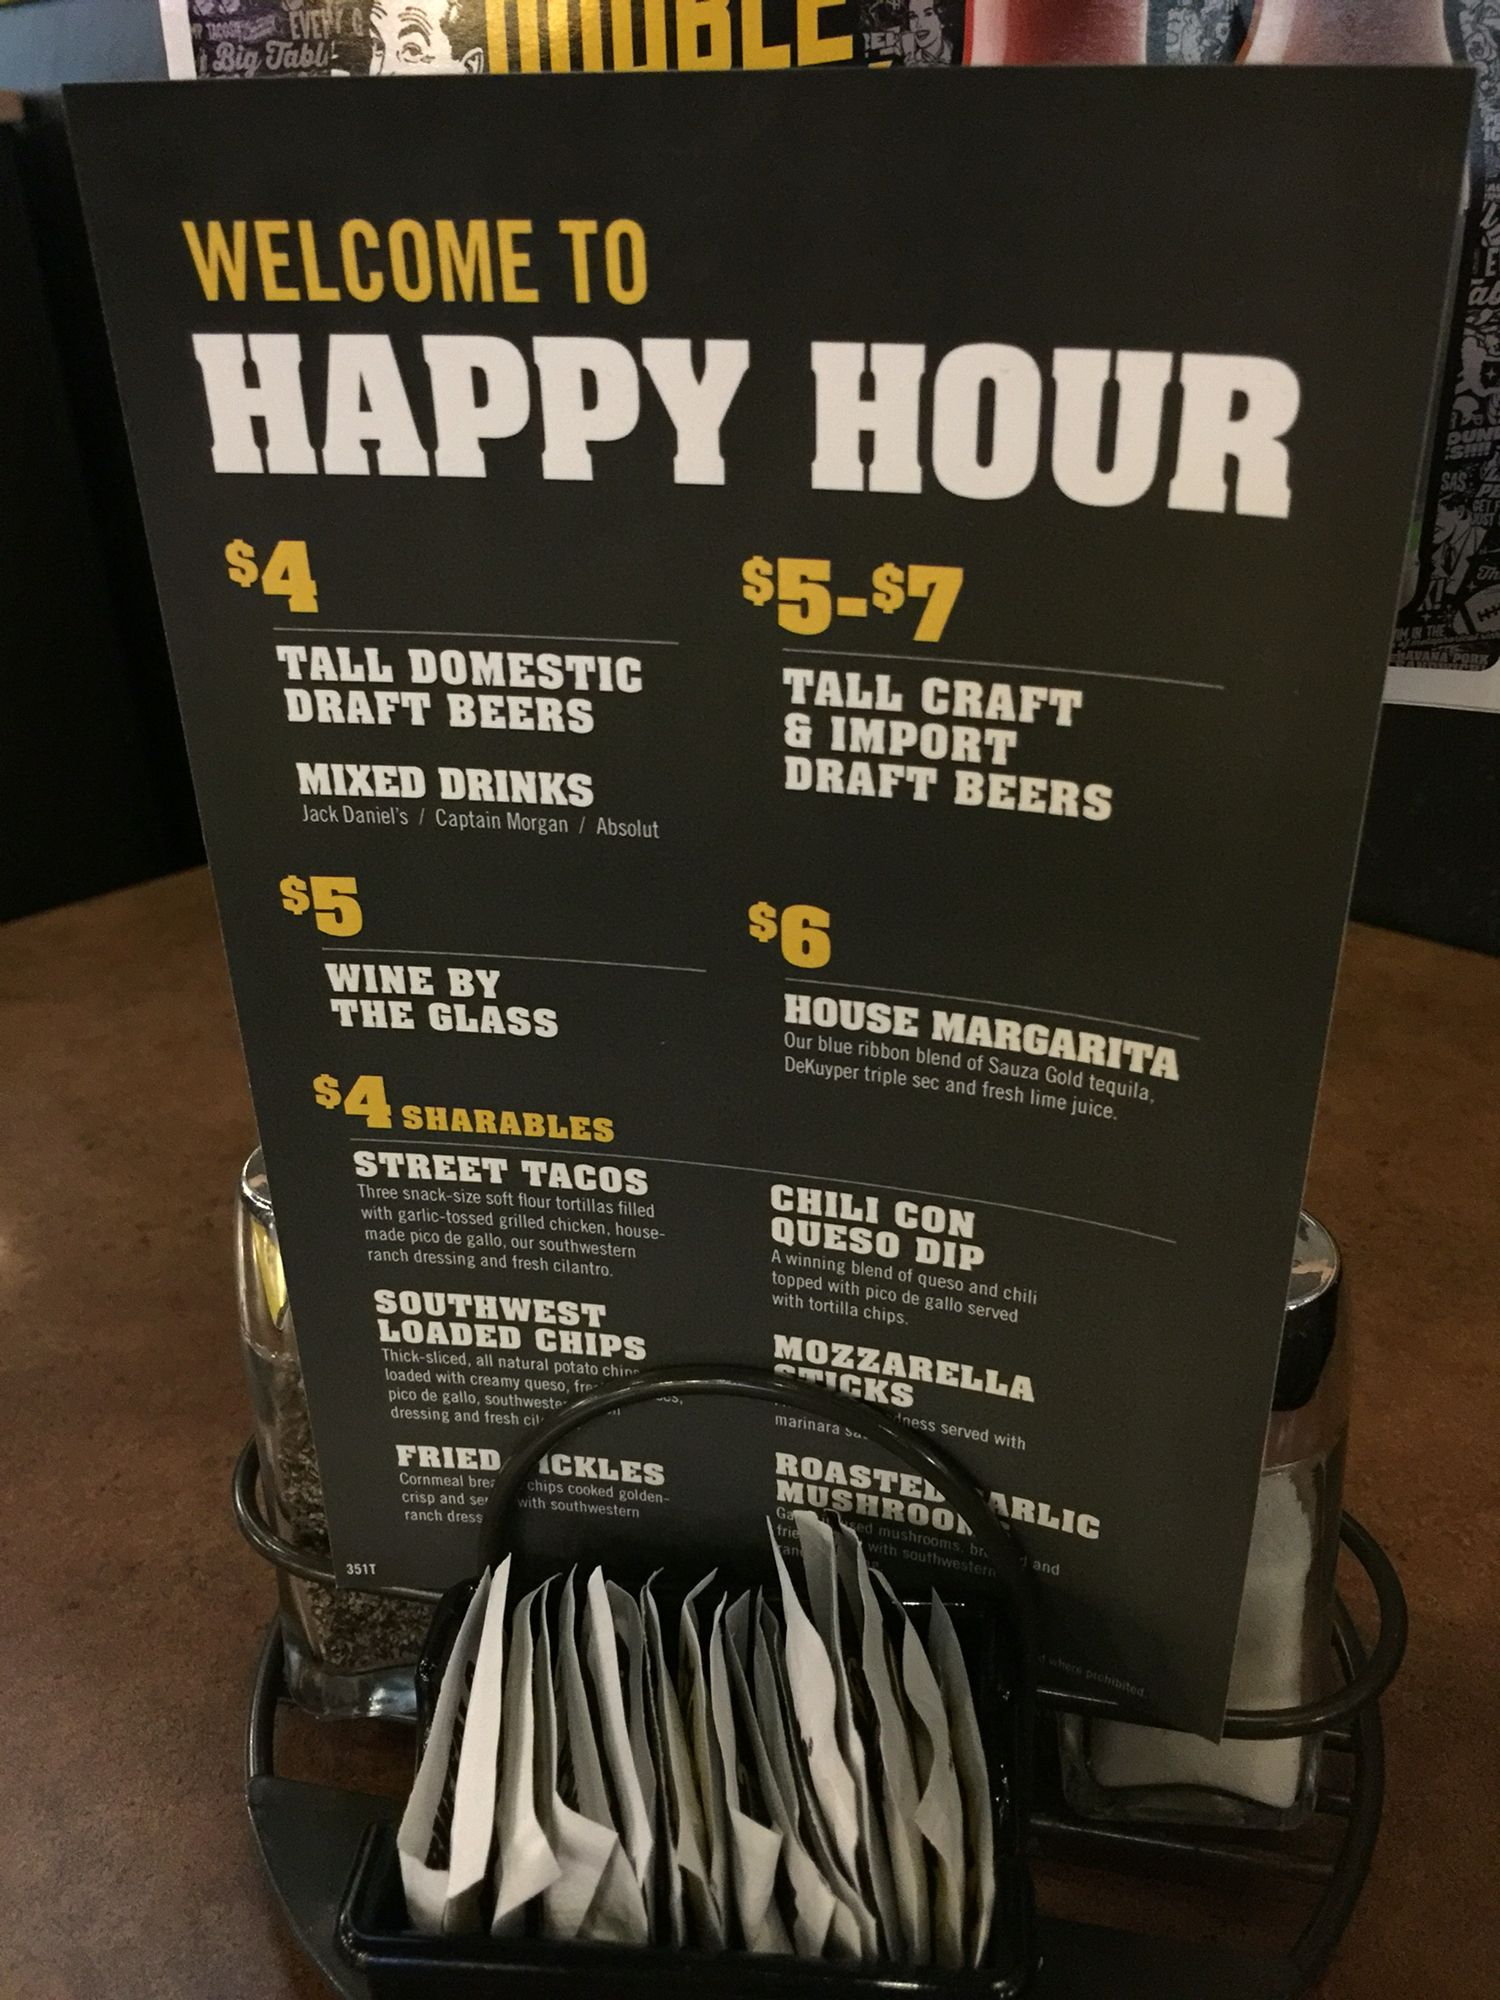 Happy Hour Buffalo Wild Wings Wine By The Glass